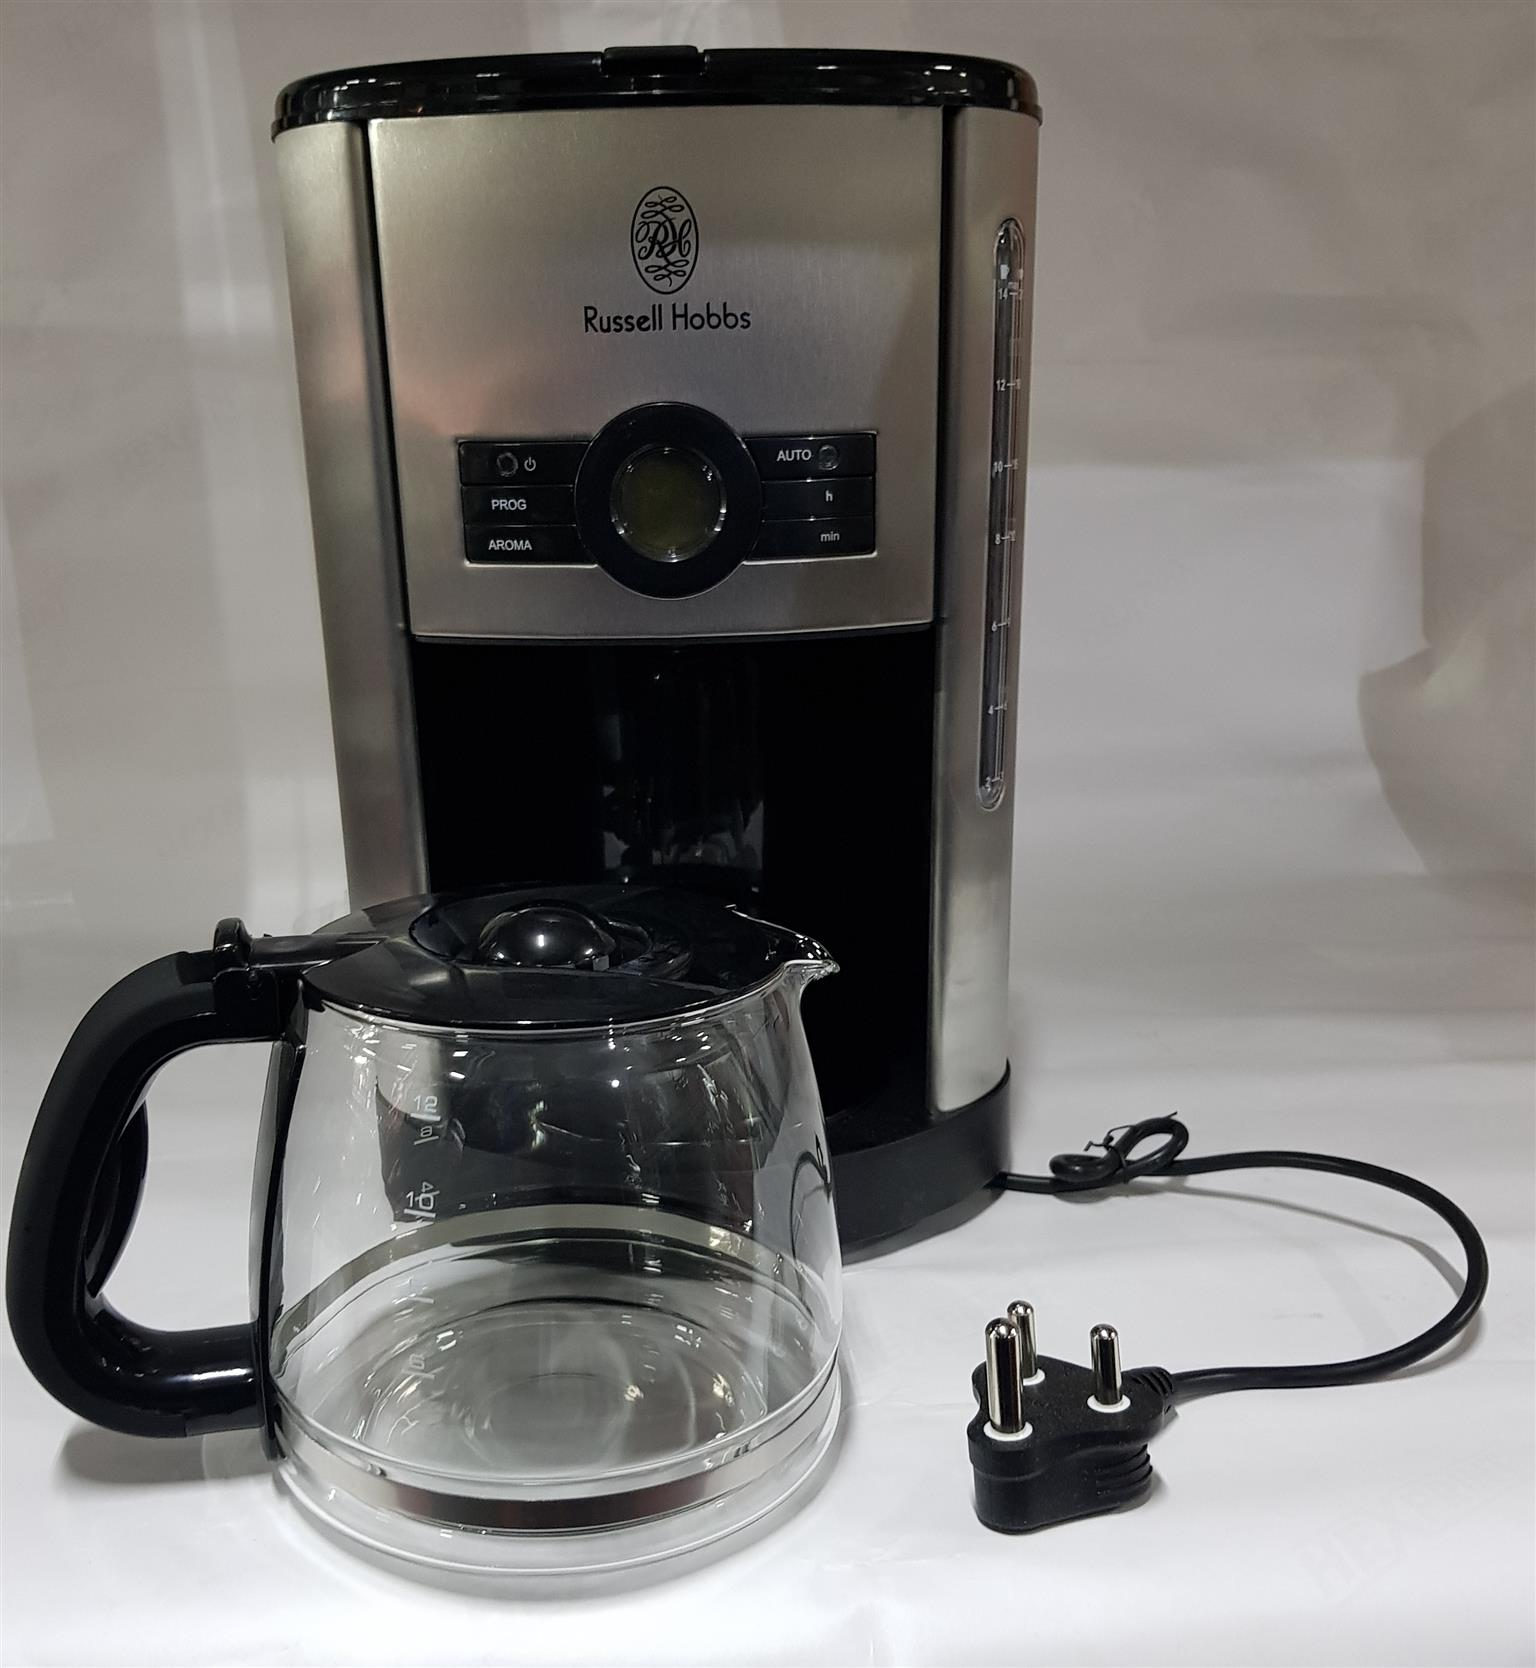 Russel hobbs coffee brewer